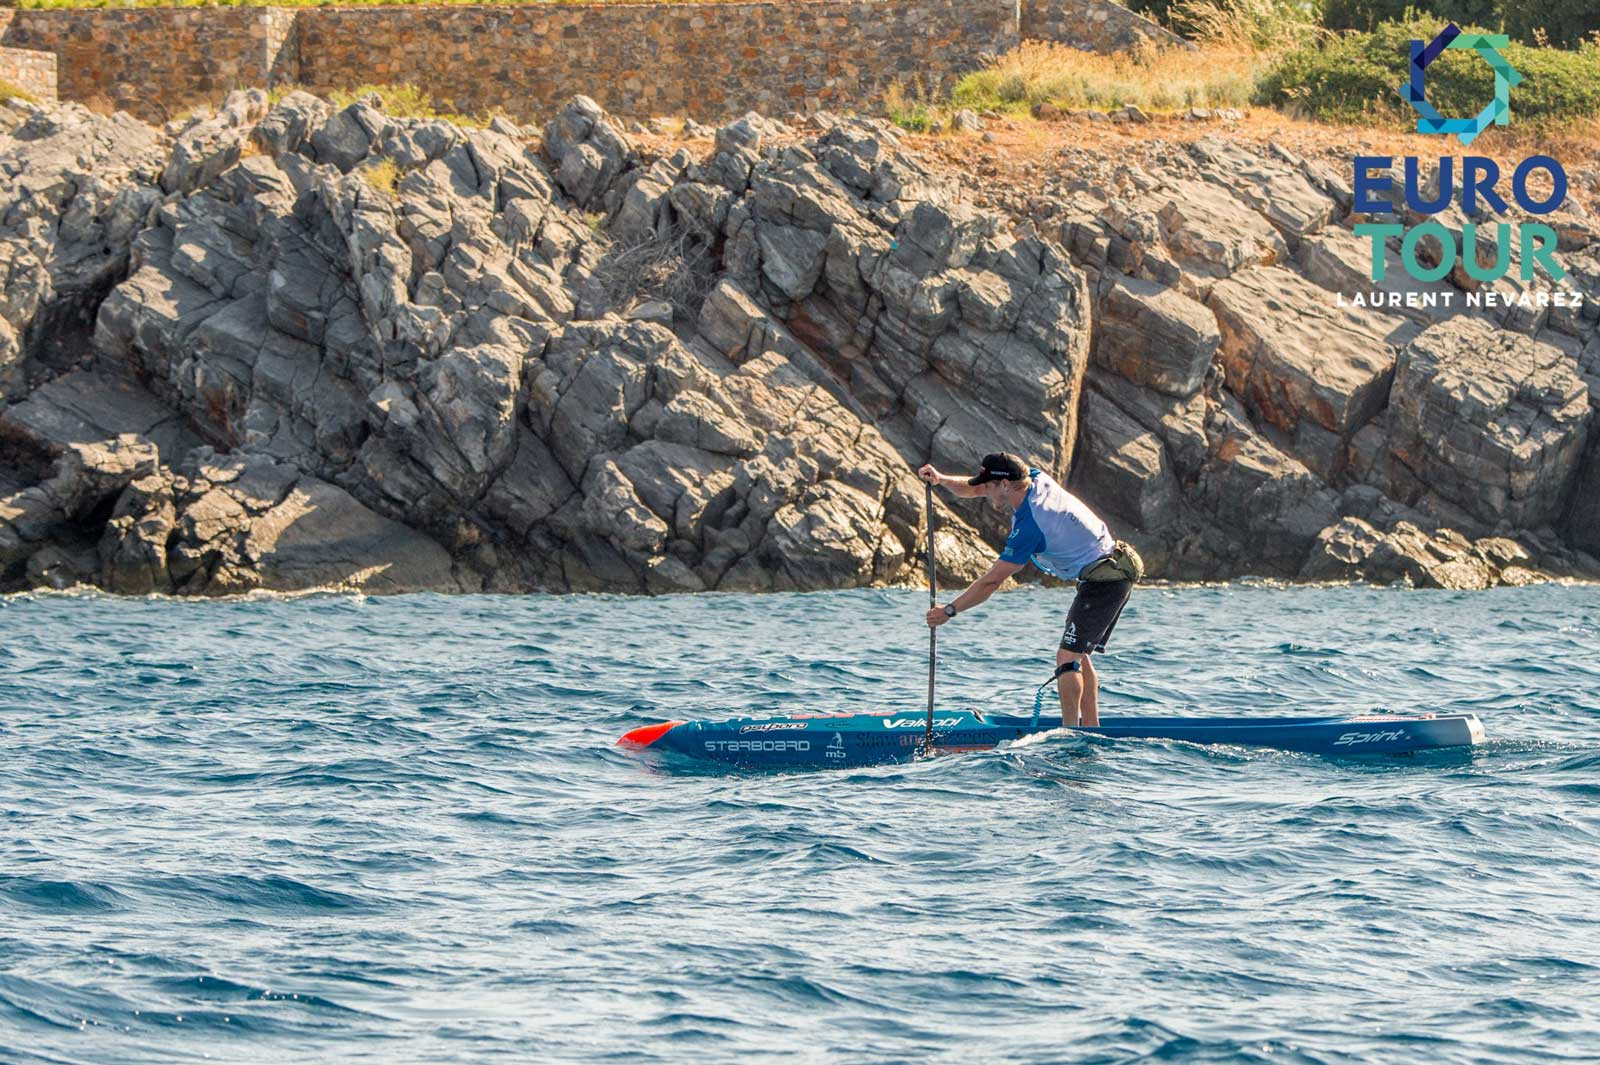 starboard-sup-stand-up-paddelboarding-eurotour-2019-Agios-Nikolaos-on-SUP-Crete-greece-dream-team-winner-michael-booth-1600